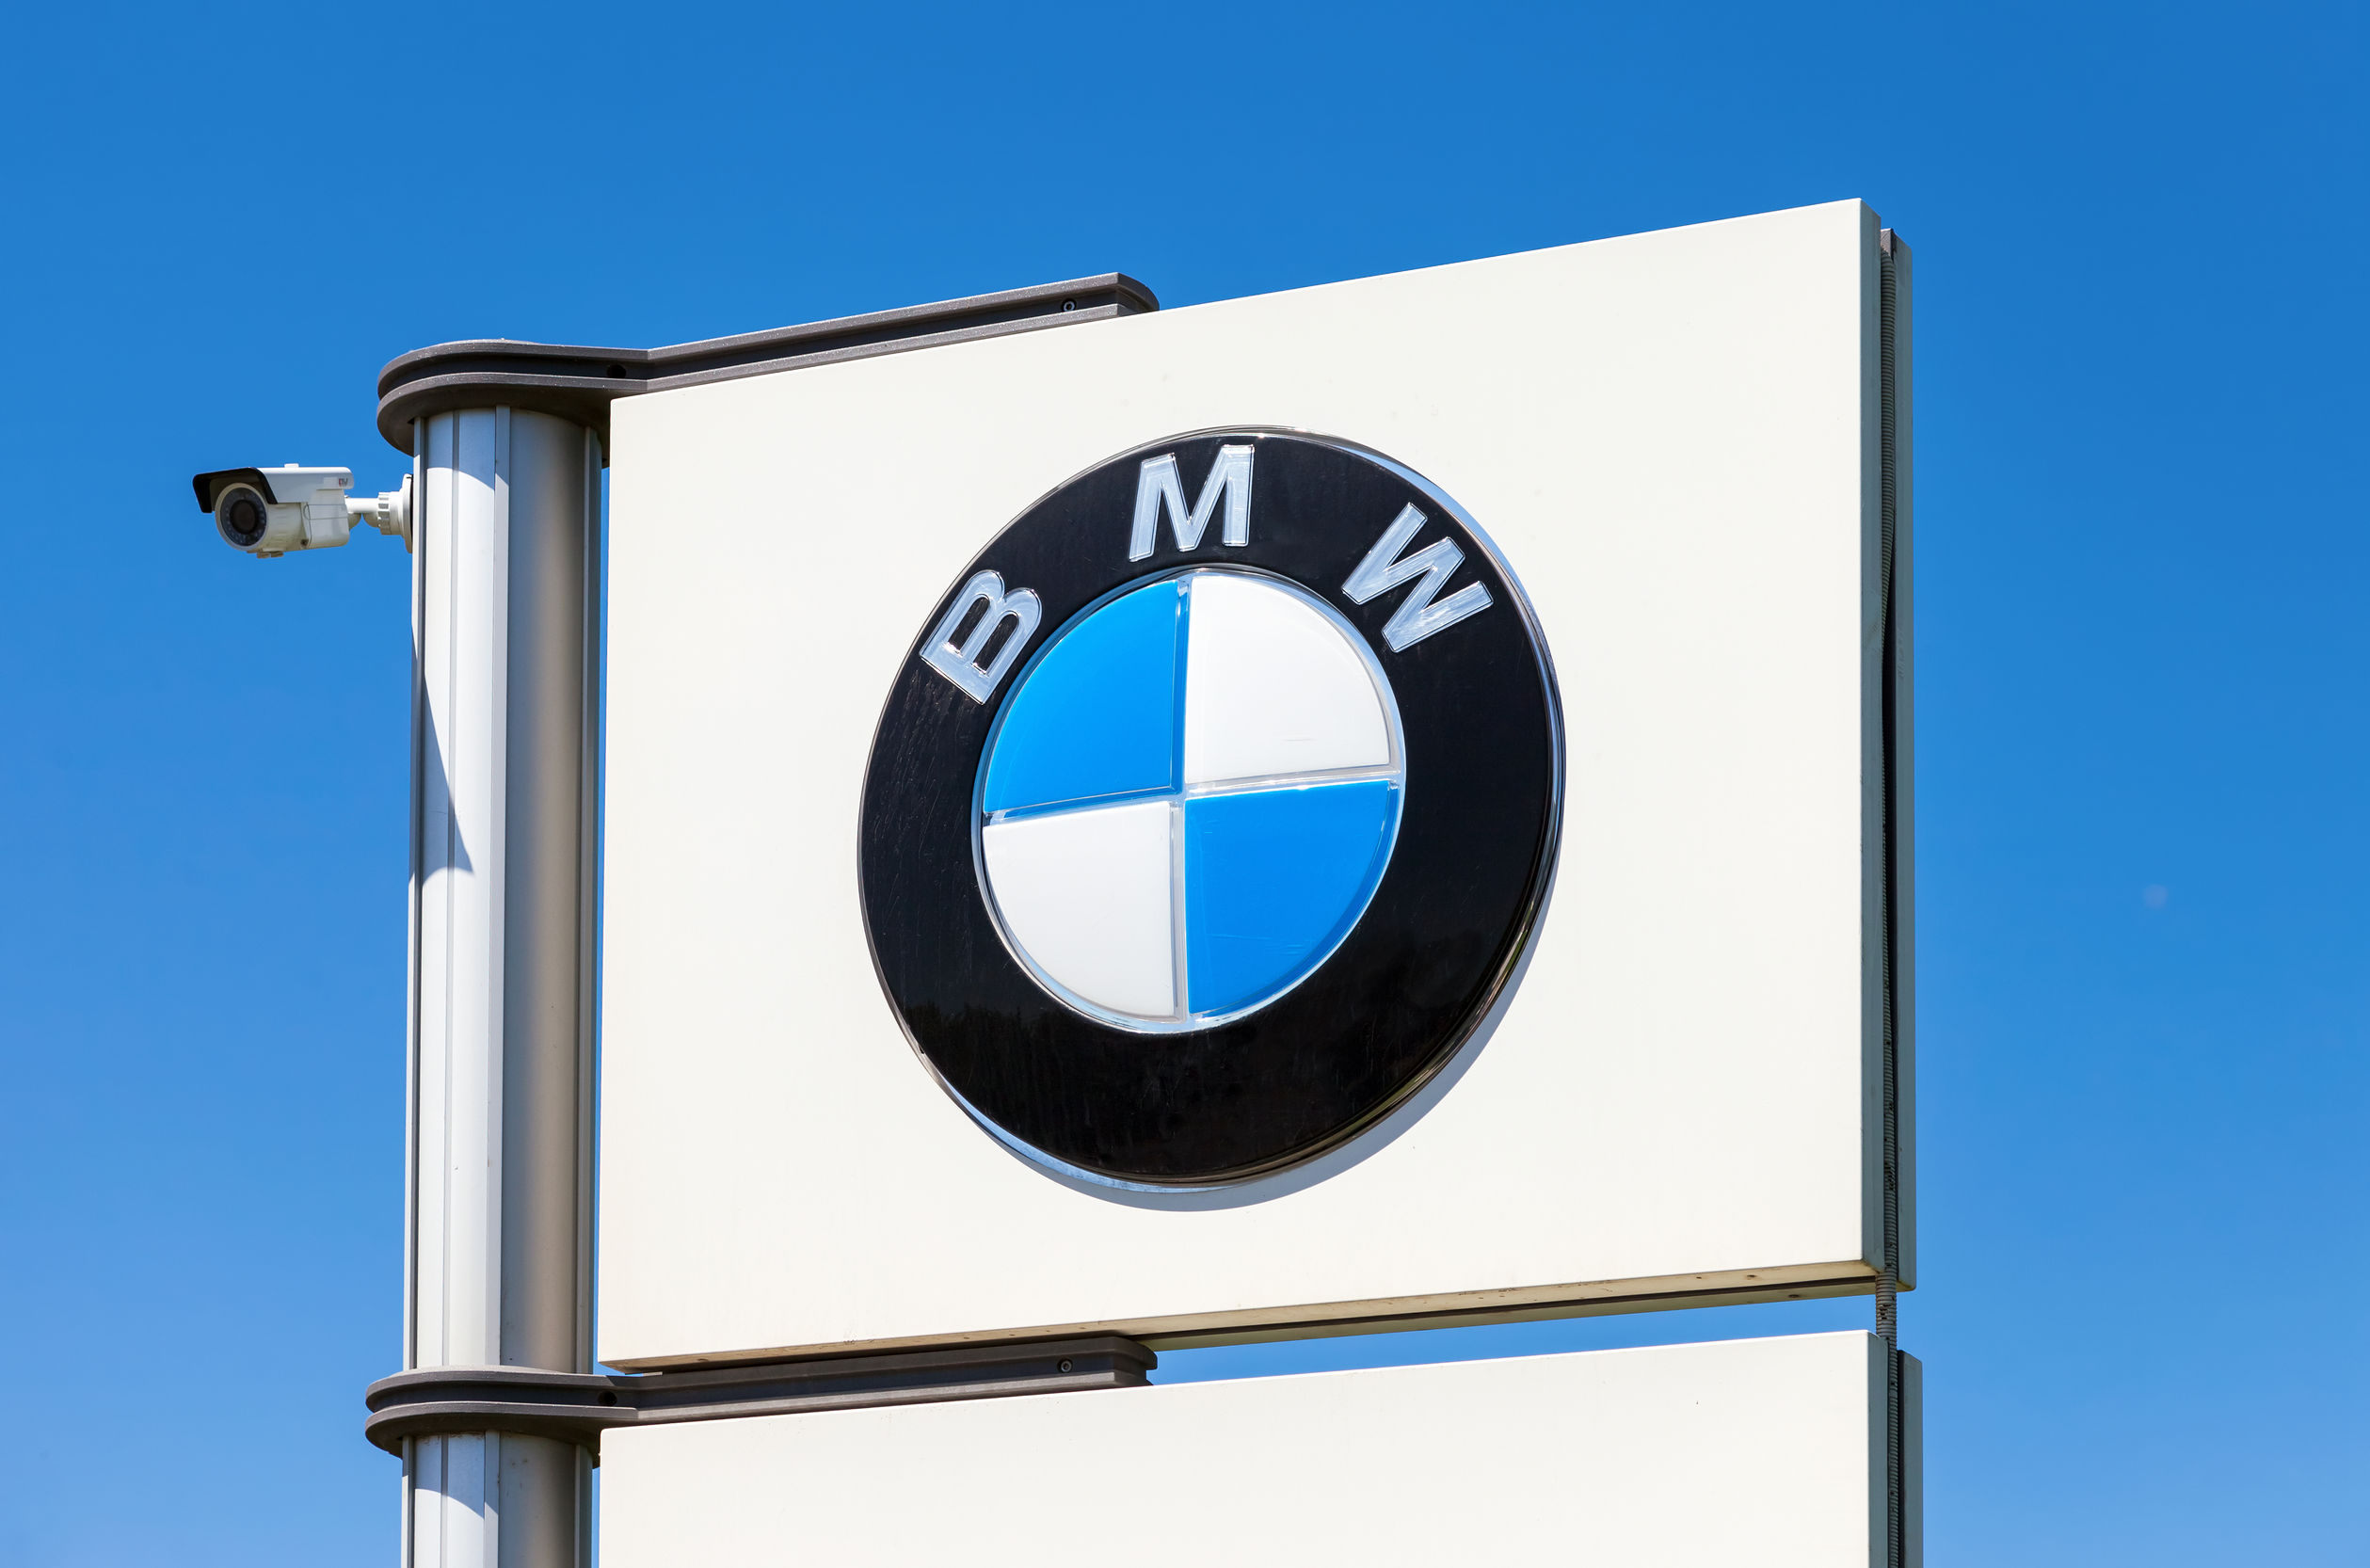 In the midst of a racial bias background check lawsuit, BMW has requested the Equal Employment Opportunity Commission (EEOC) give details in their own background screening process. The EEOC is refusing and claiming irrelevancy.